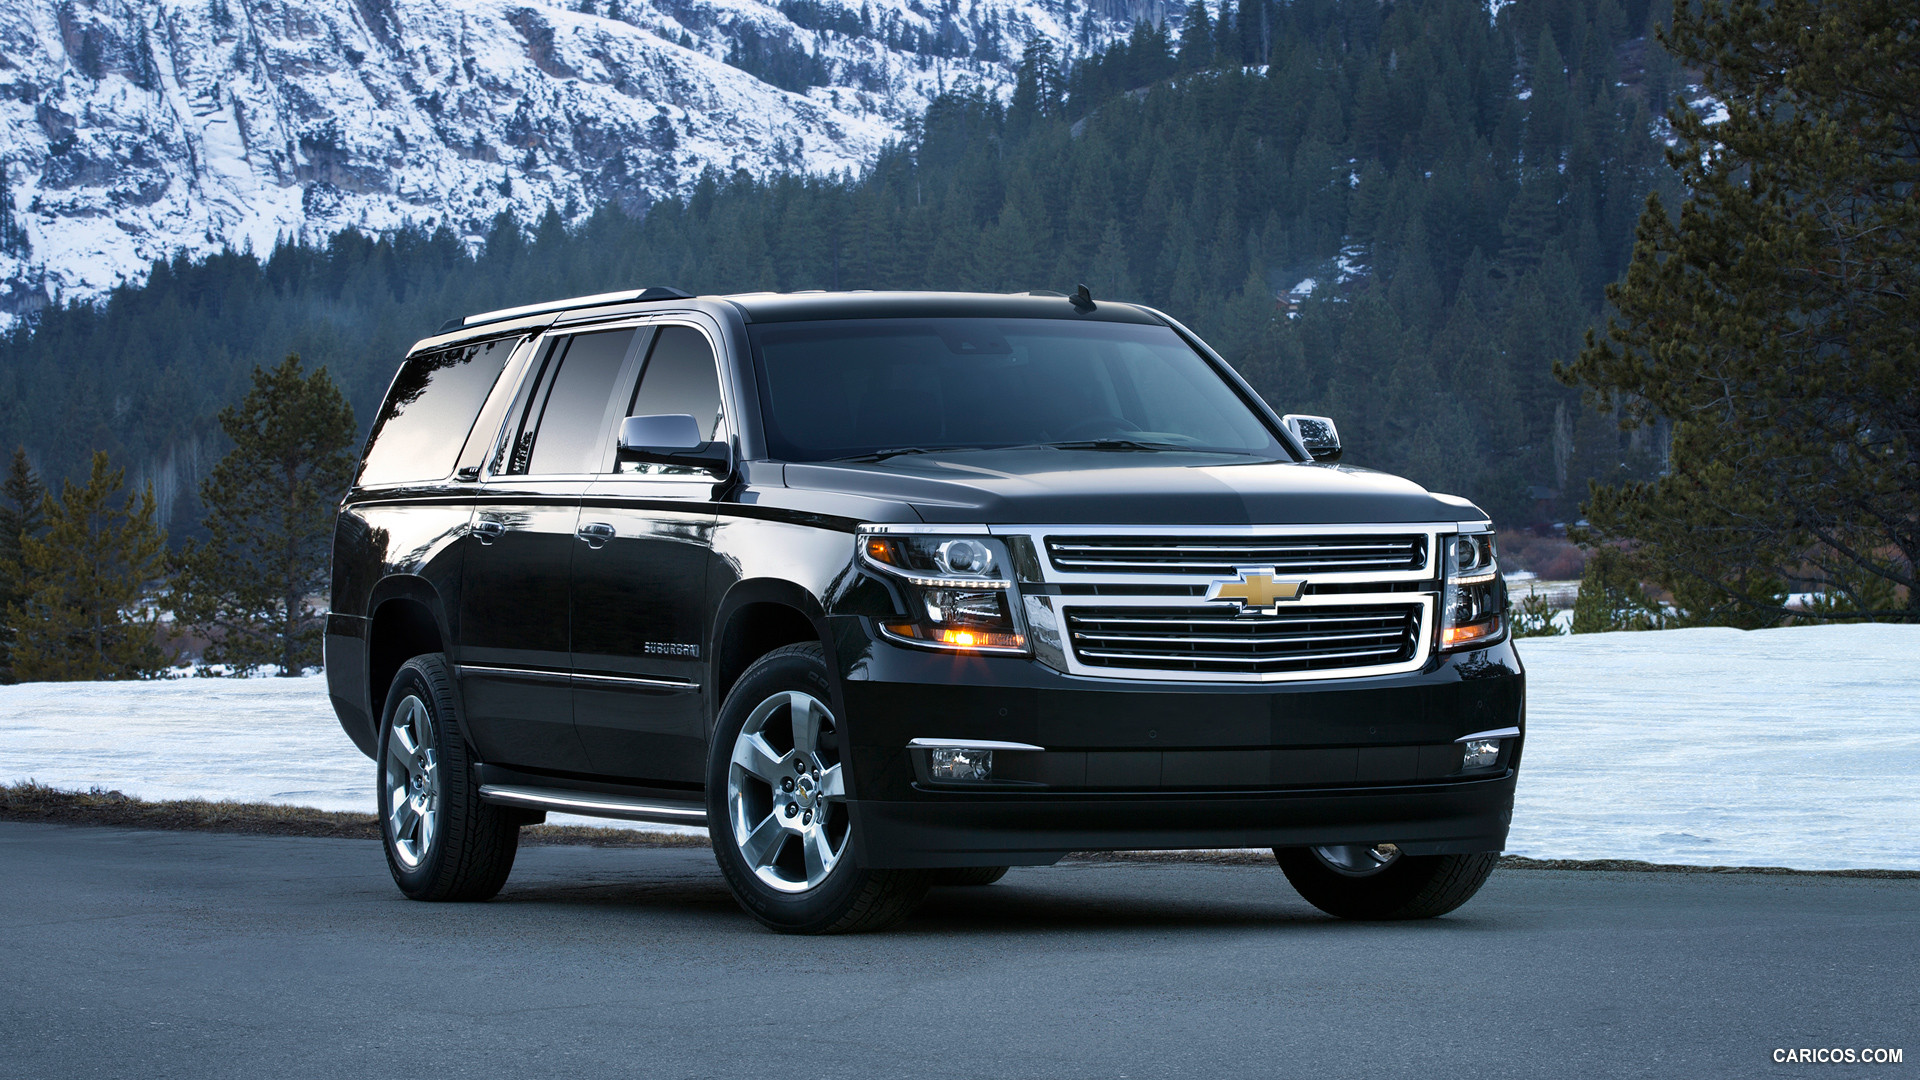 Chevrolet Suburban photos - PhotoGallery with 56 pics ...